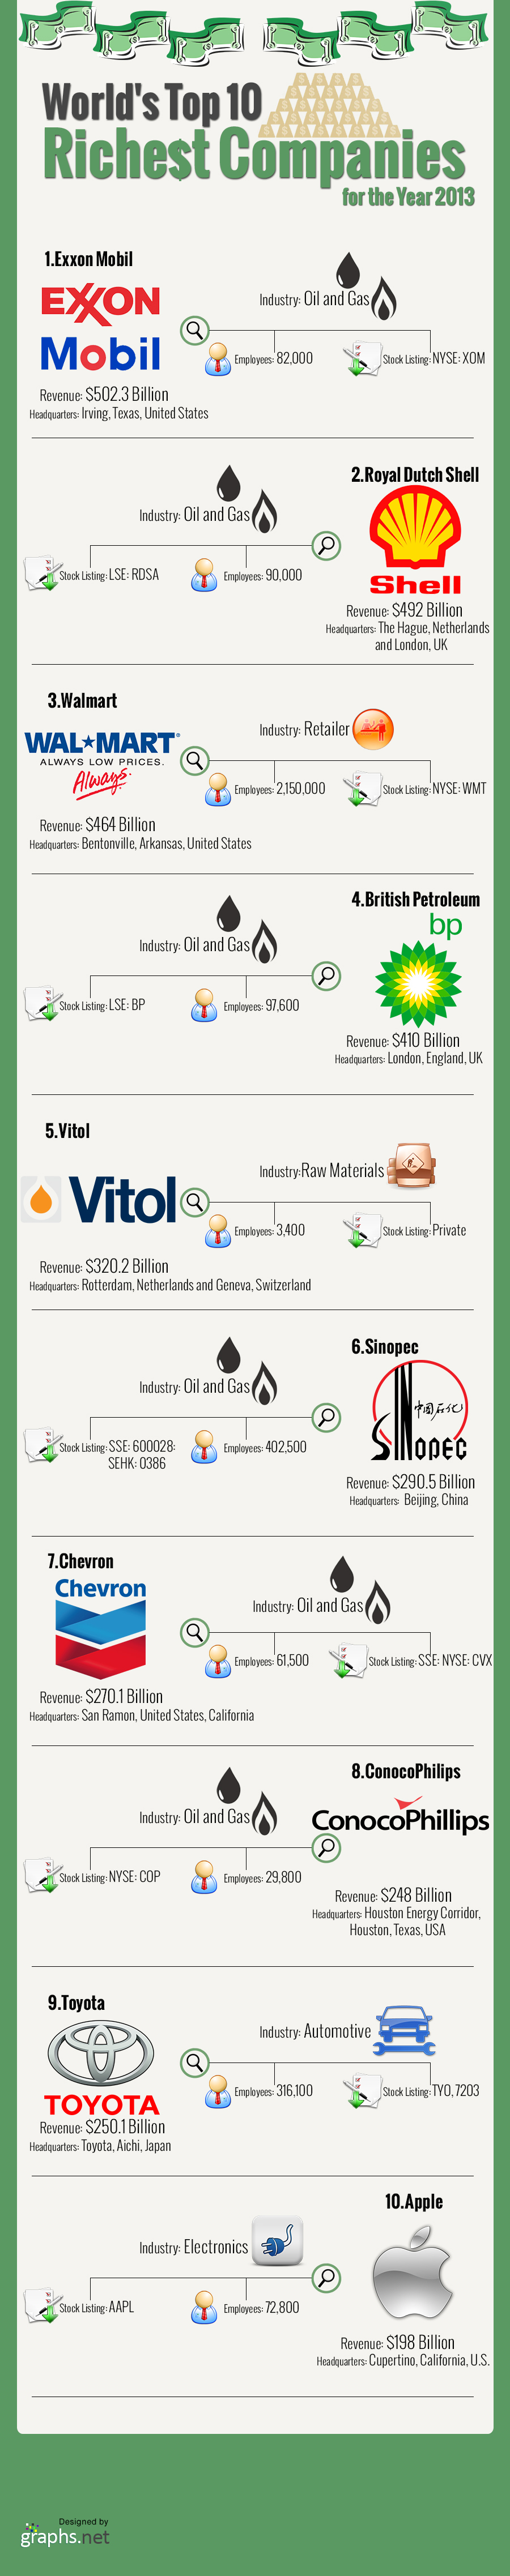 10 Richest Companies Of 2013